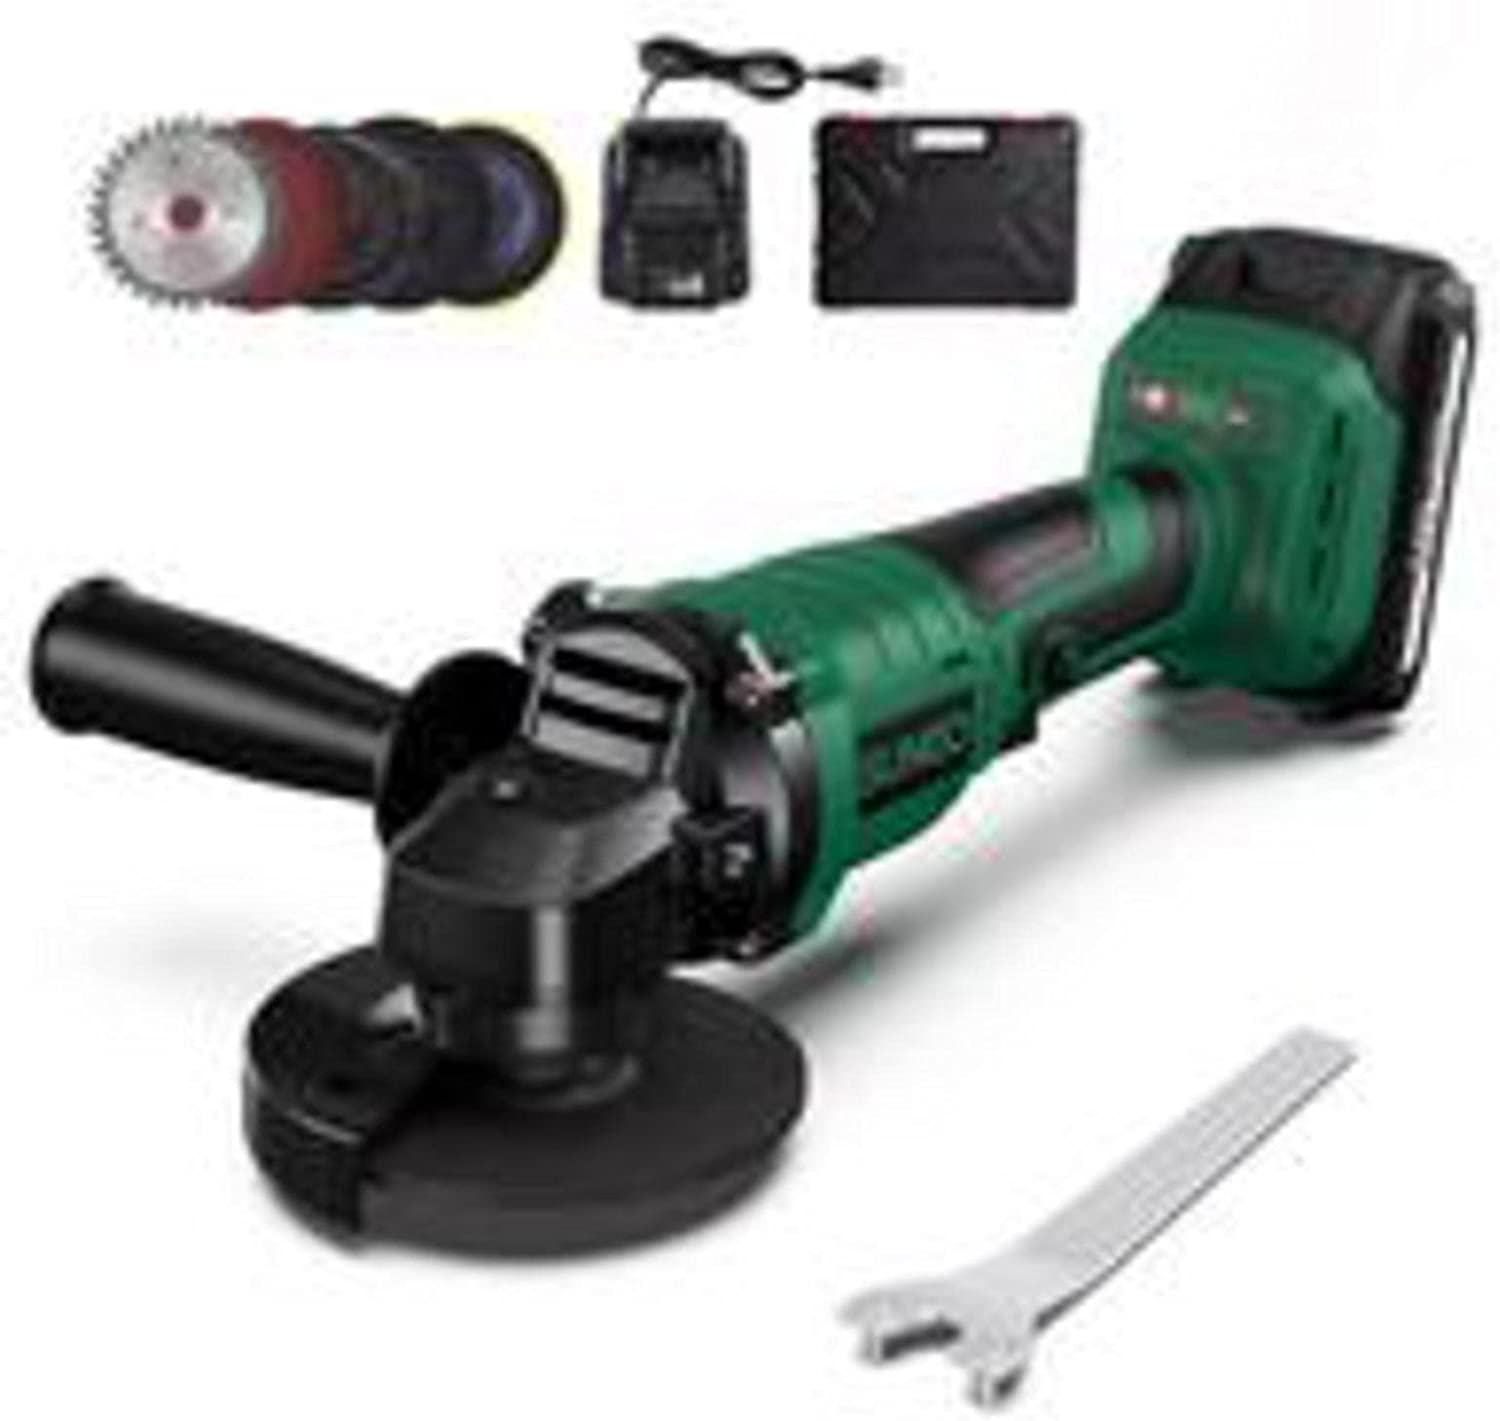 Brushless Cordless Angle Grinder Charg 21V Fast Direct store price